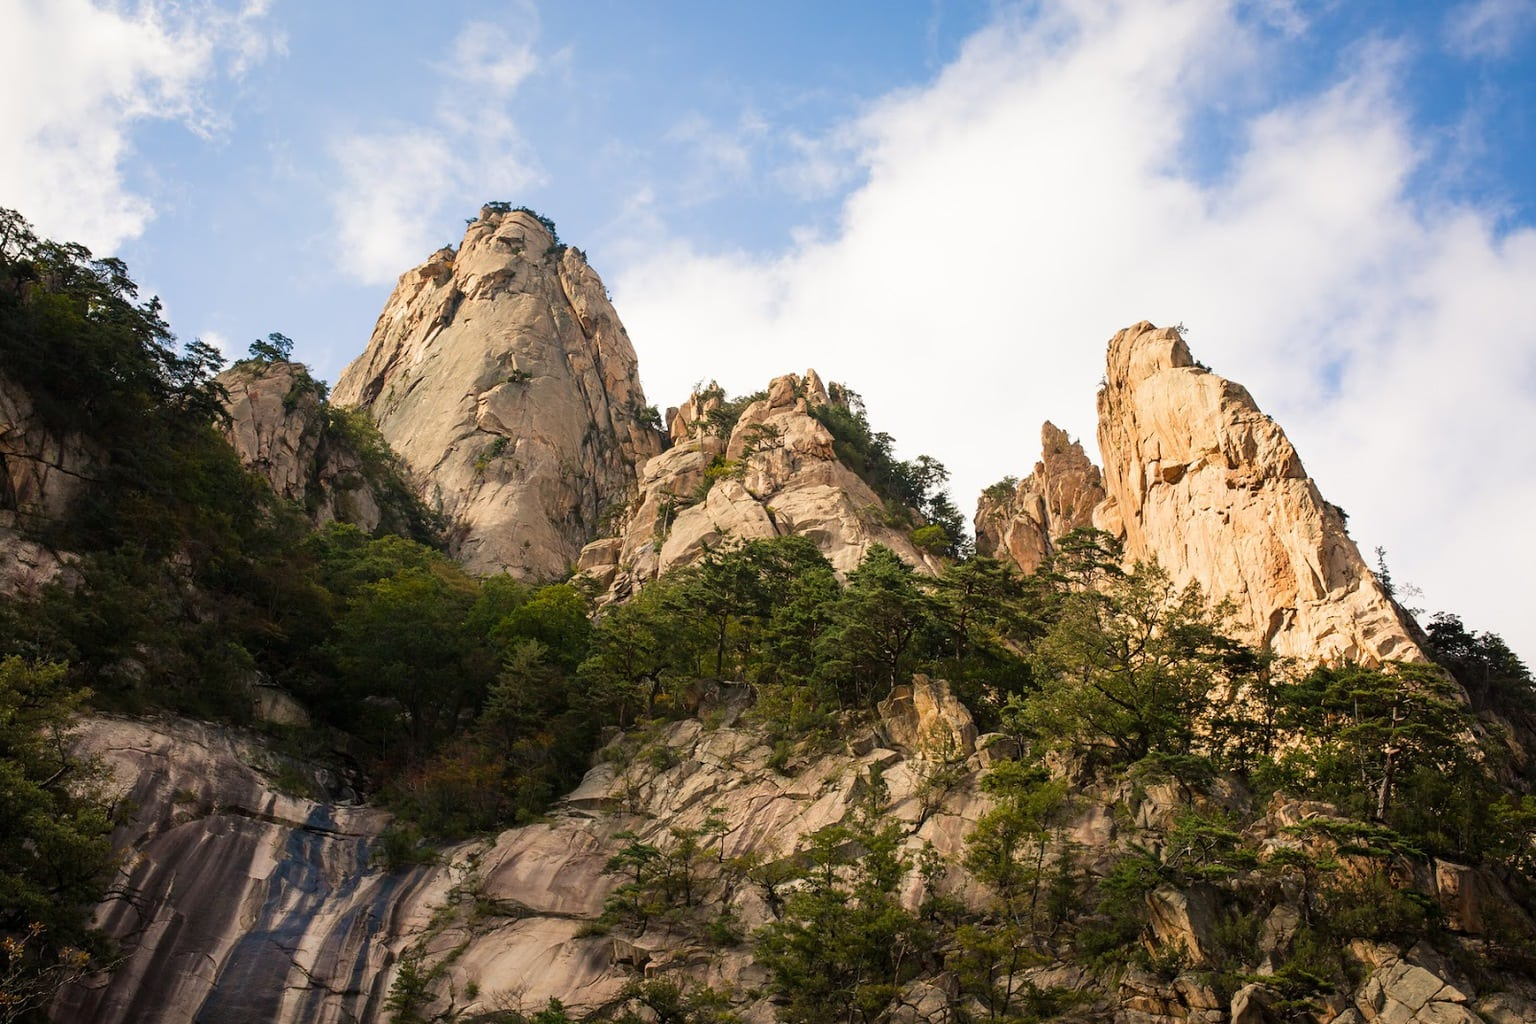 The beautiful jagged limestone rocks of Seorak Mountain